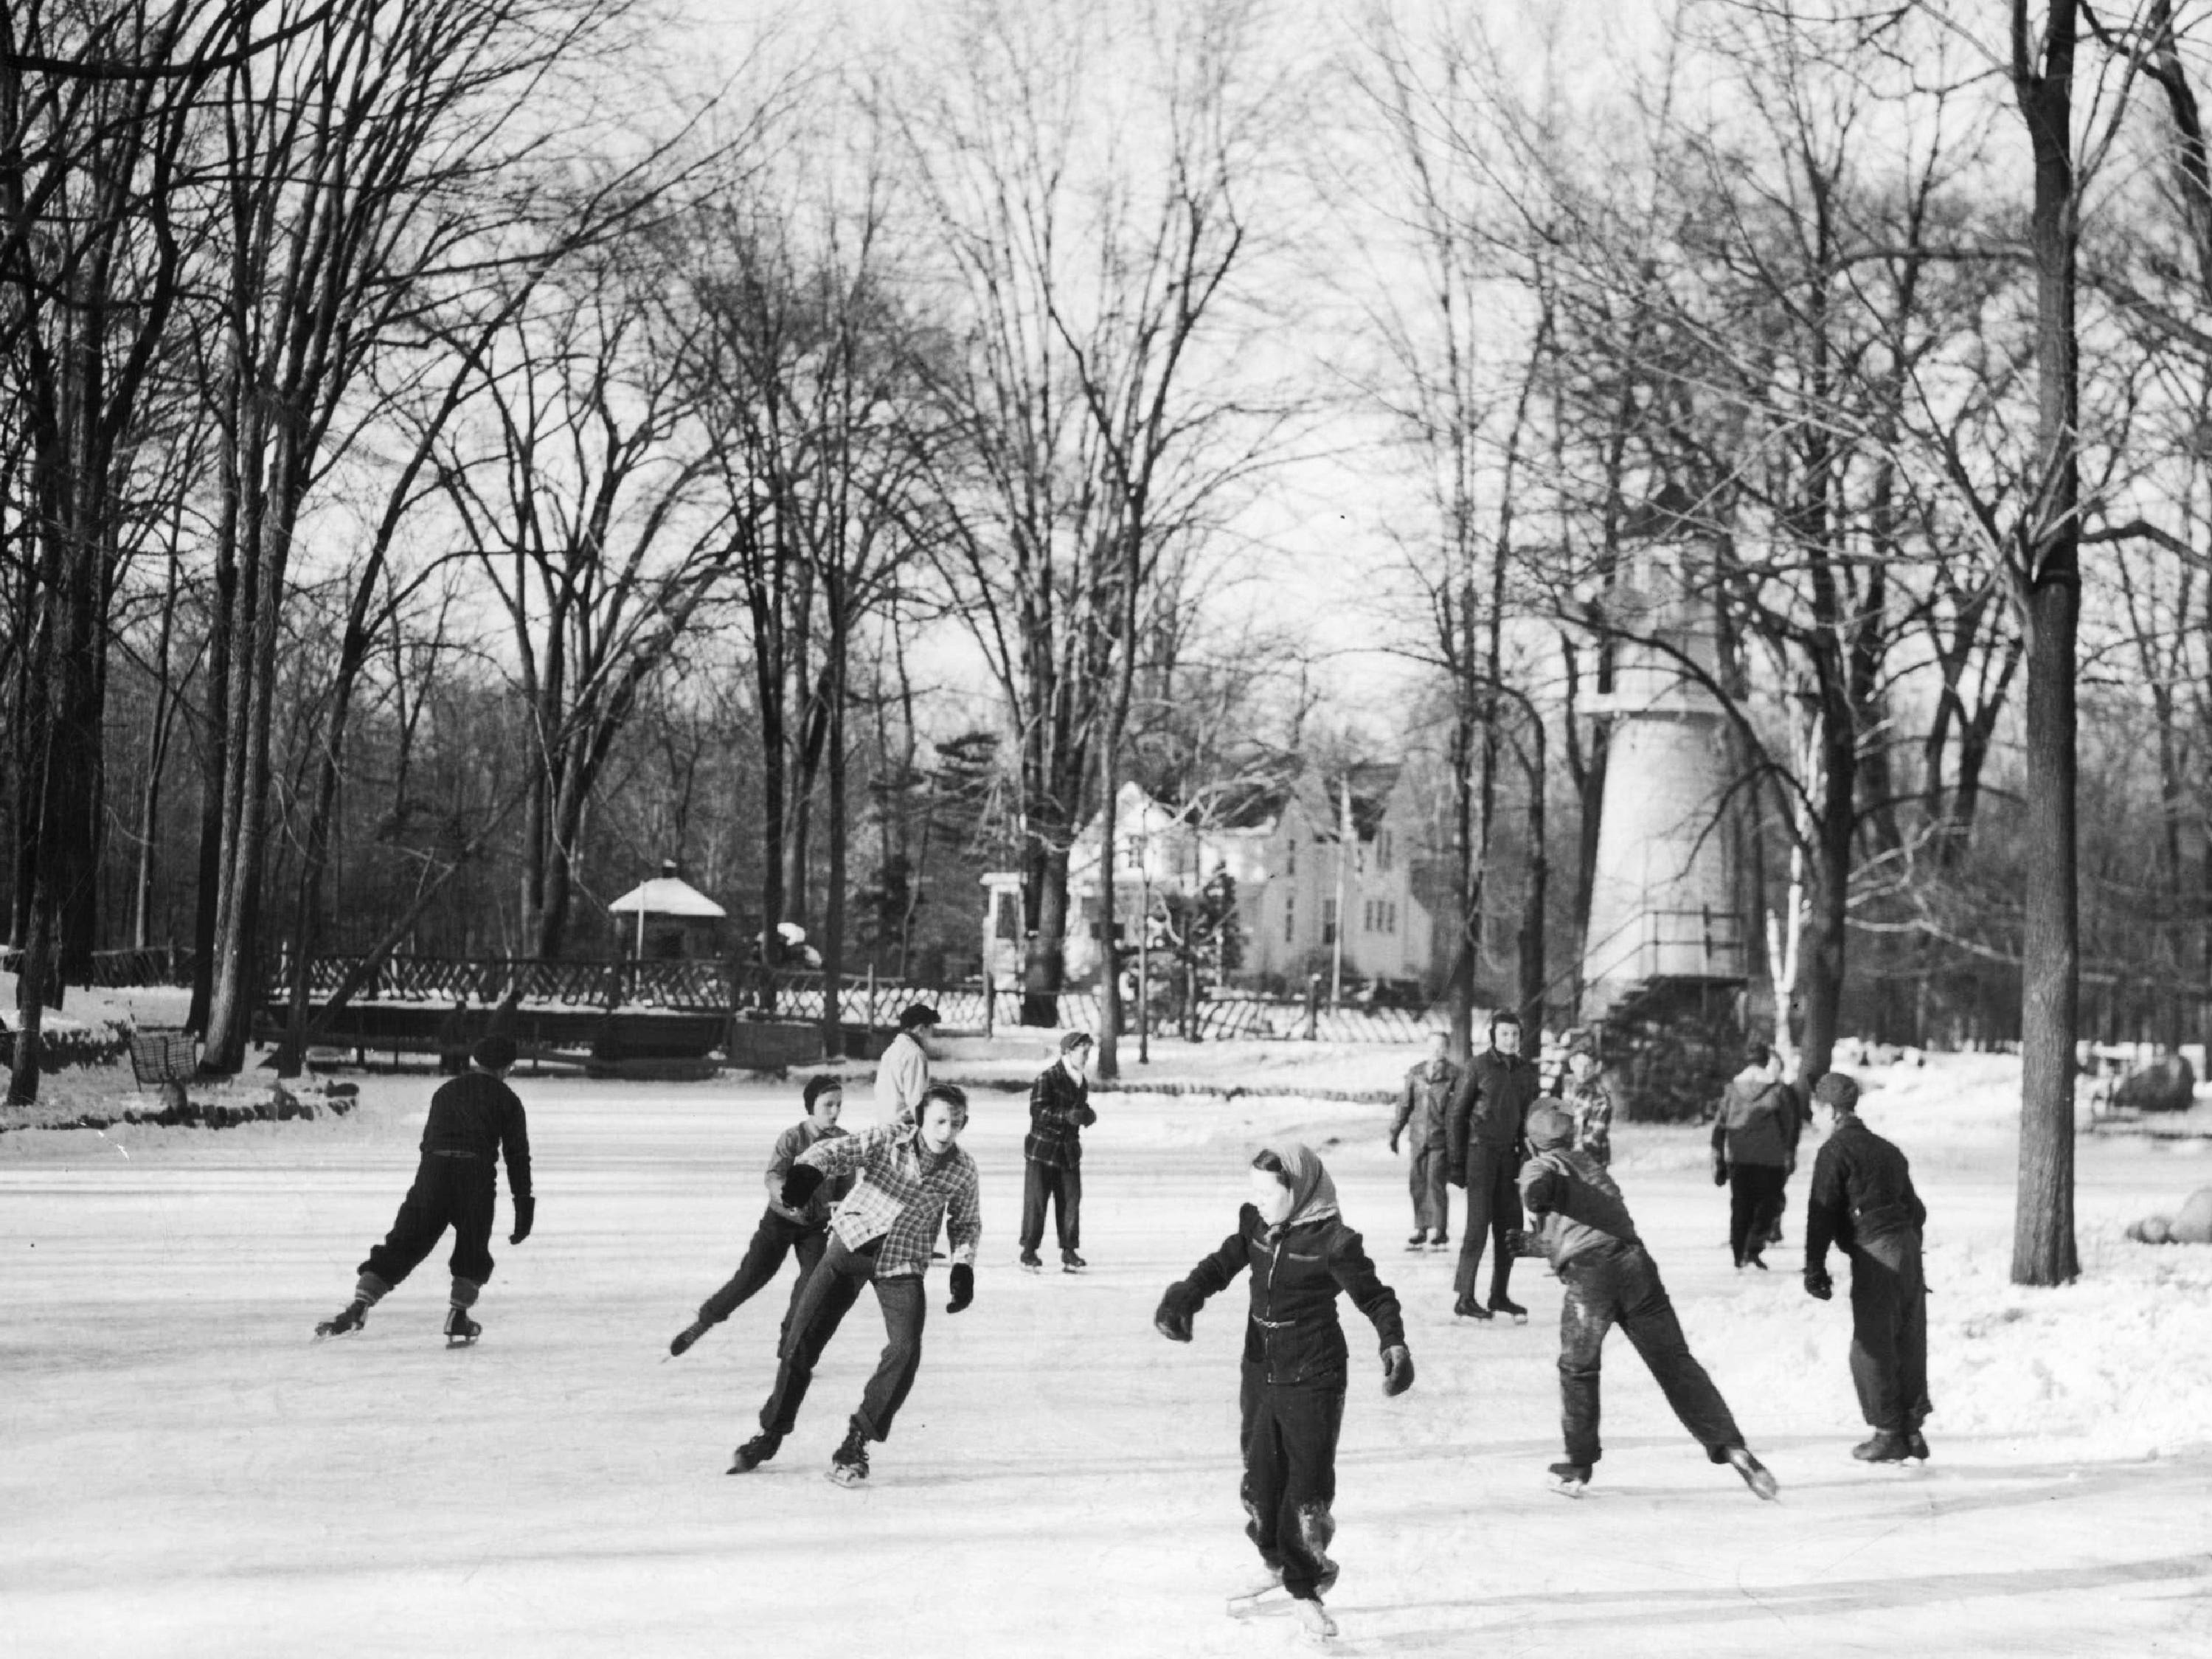 People skate on the pond in Detroit's Palmer Park in the winter of 1944.